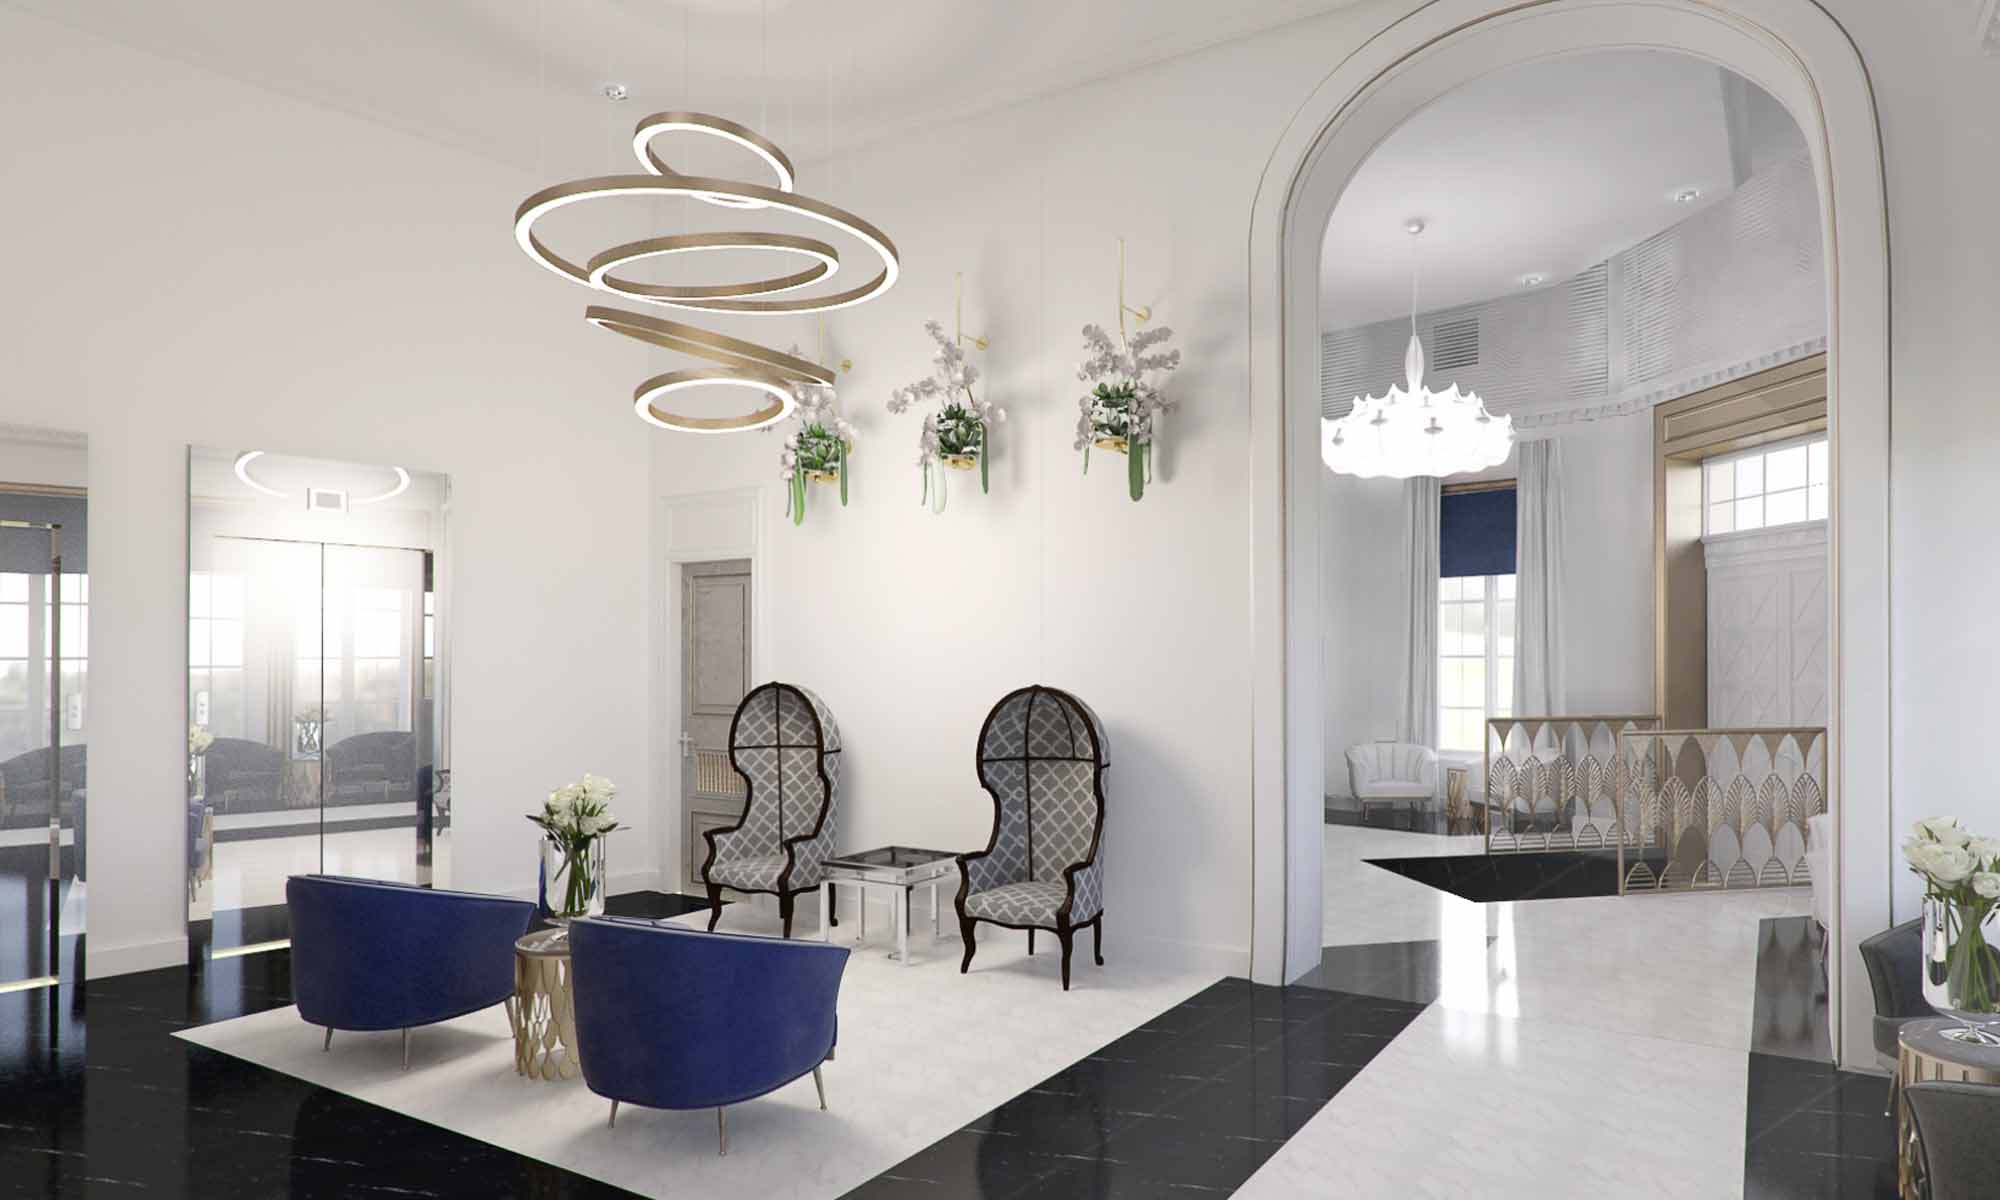 Design Interieur Hotel Hotel 5 Stars Bucharest Art Deco Interior Design Studio Insign